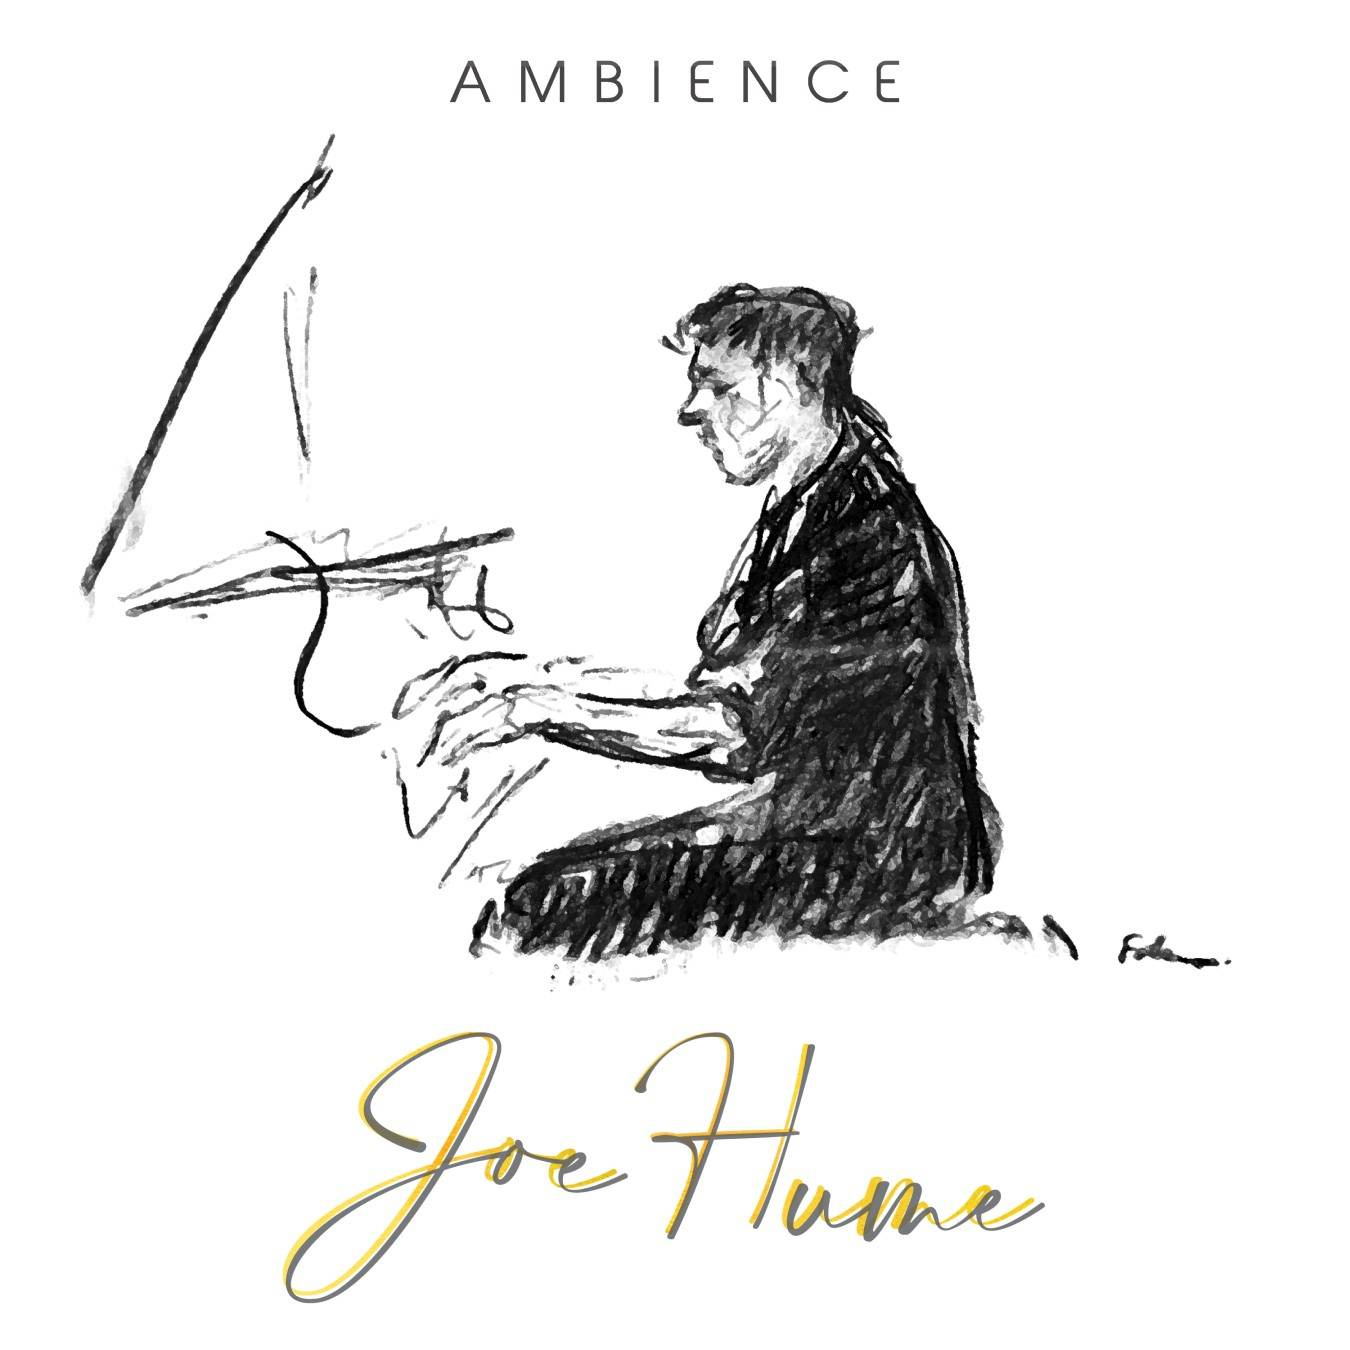 Joe Hume's Ambience cover art